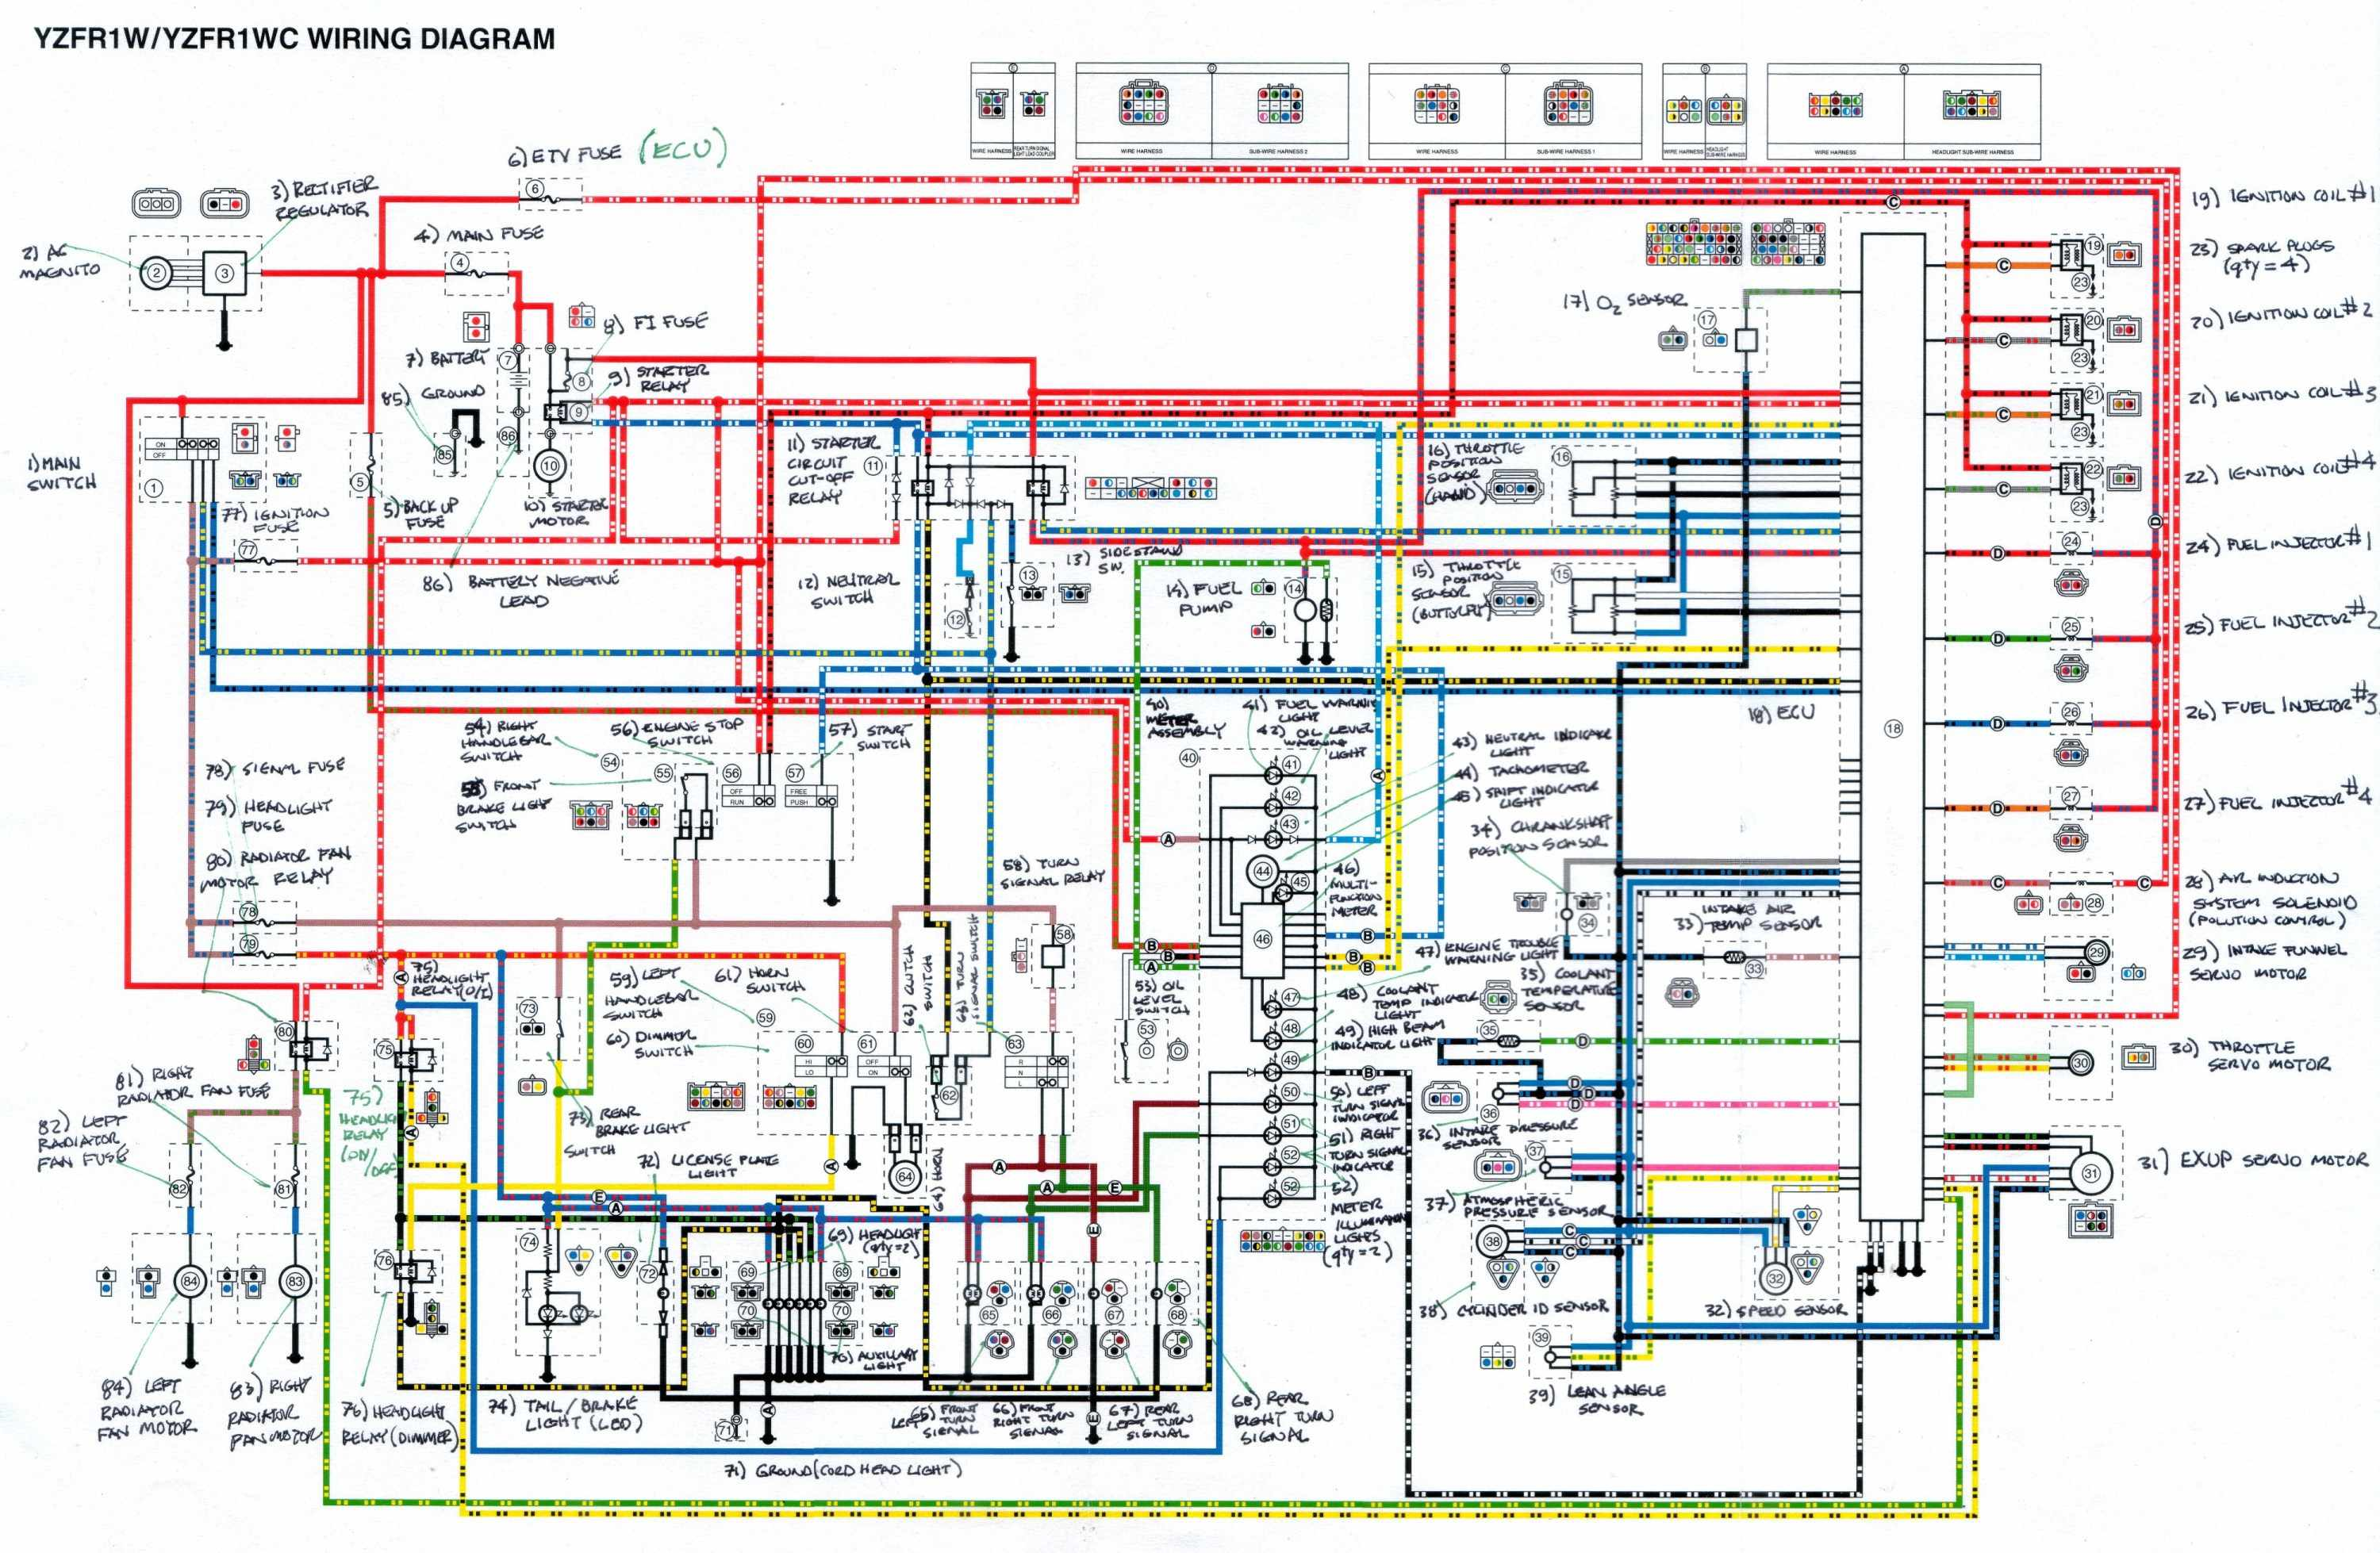 Dwarf Car Fuel System Diagram Wiring Data Cooling Diagrams For Cars I Have A 2008 Yamaha R1 Motorcycle Engine With Components And Rh Justanswer Com C Basic